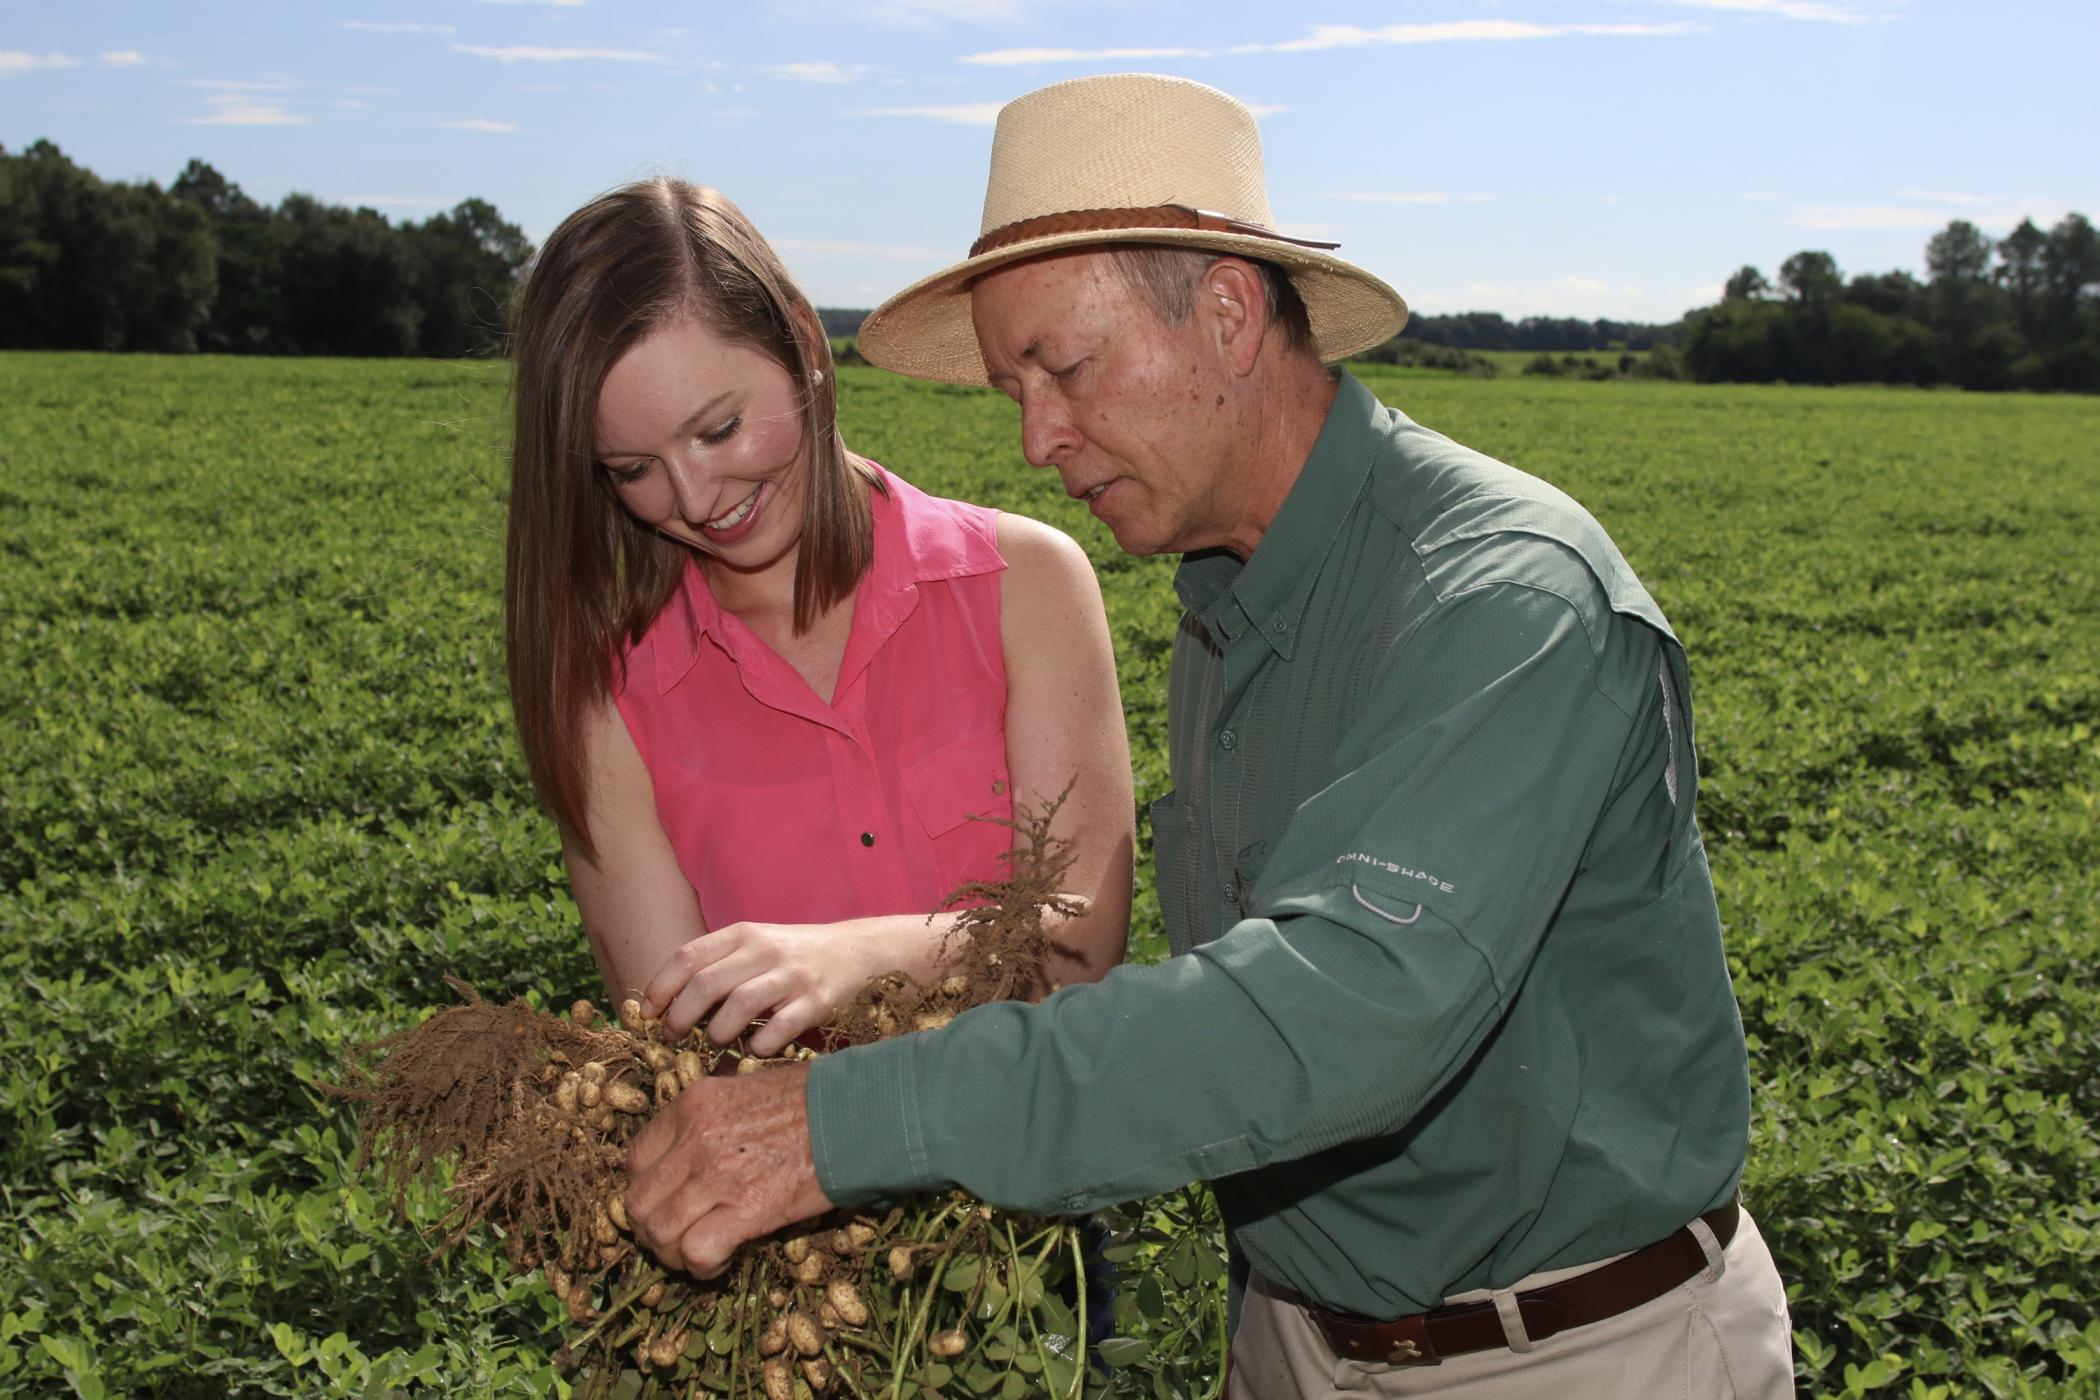 Casey Cox and her father, Glenn, holding a bunch of peanuts or soybeans on their farm in South Georgia